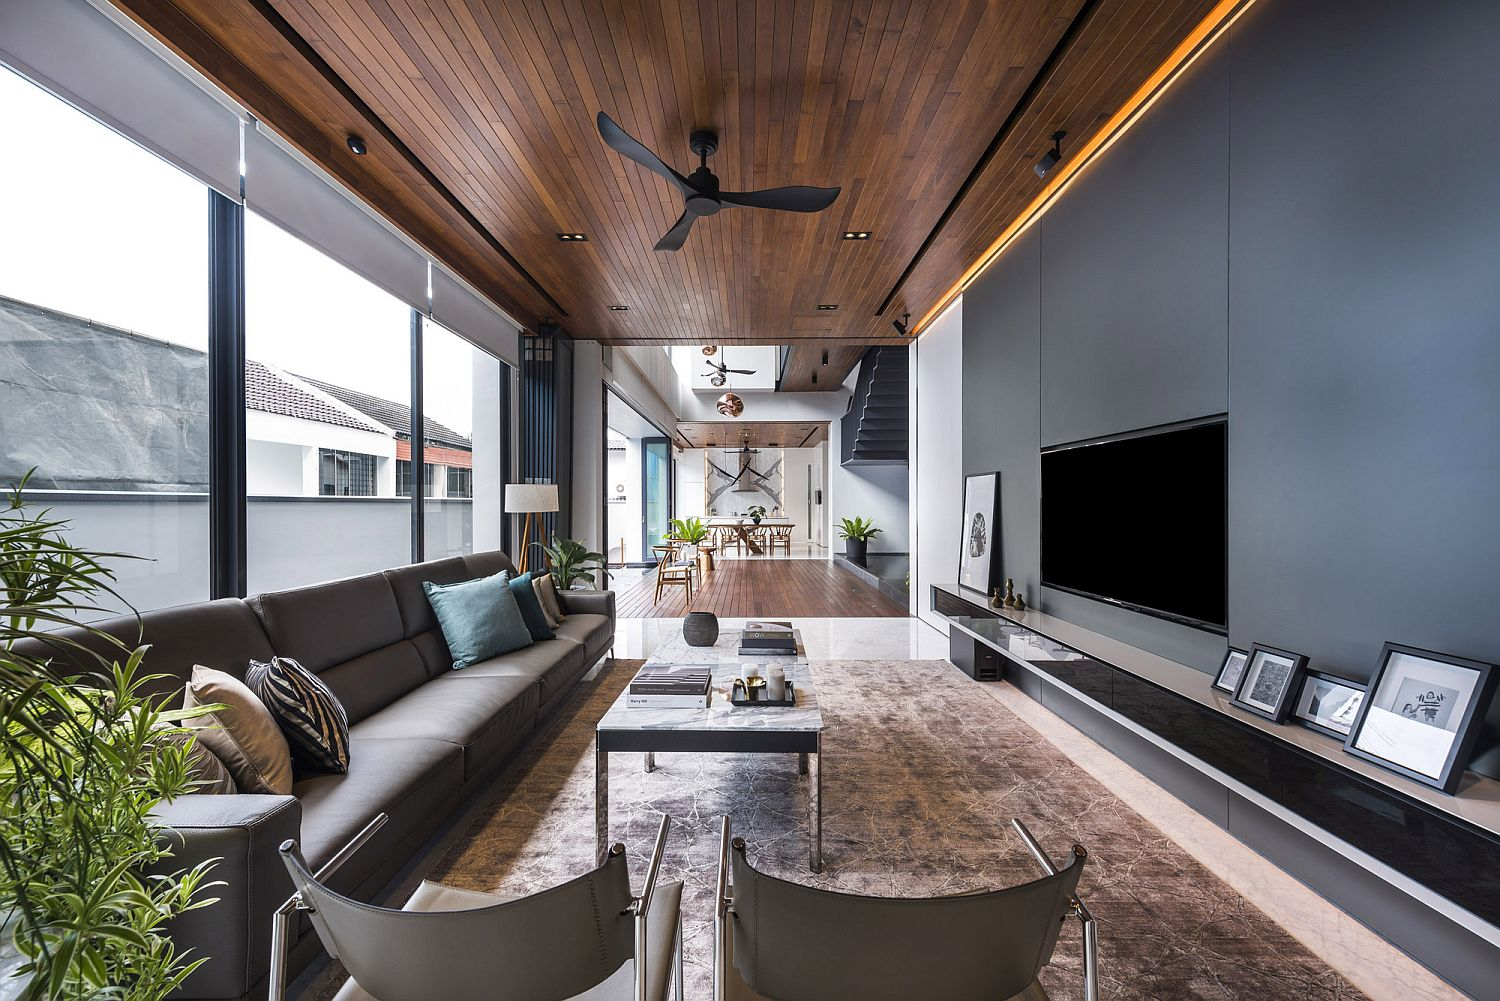 Open interiors allow the homeowner to entertain guests with ease